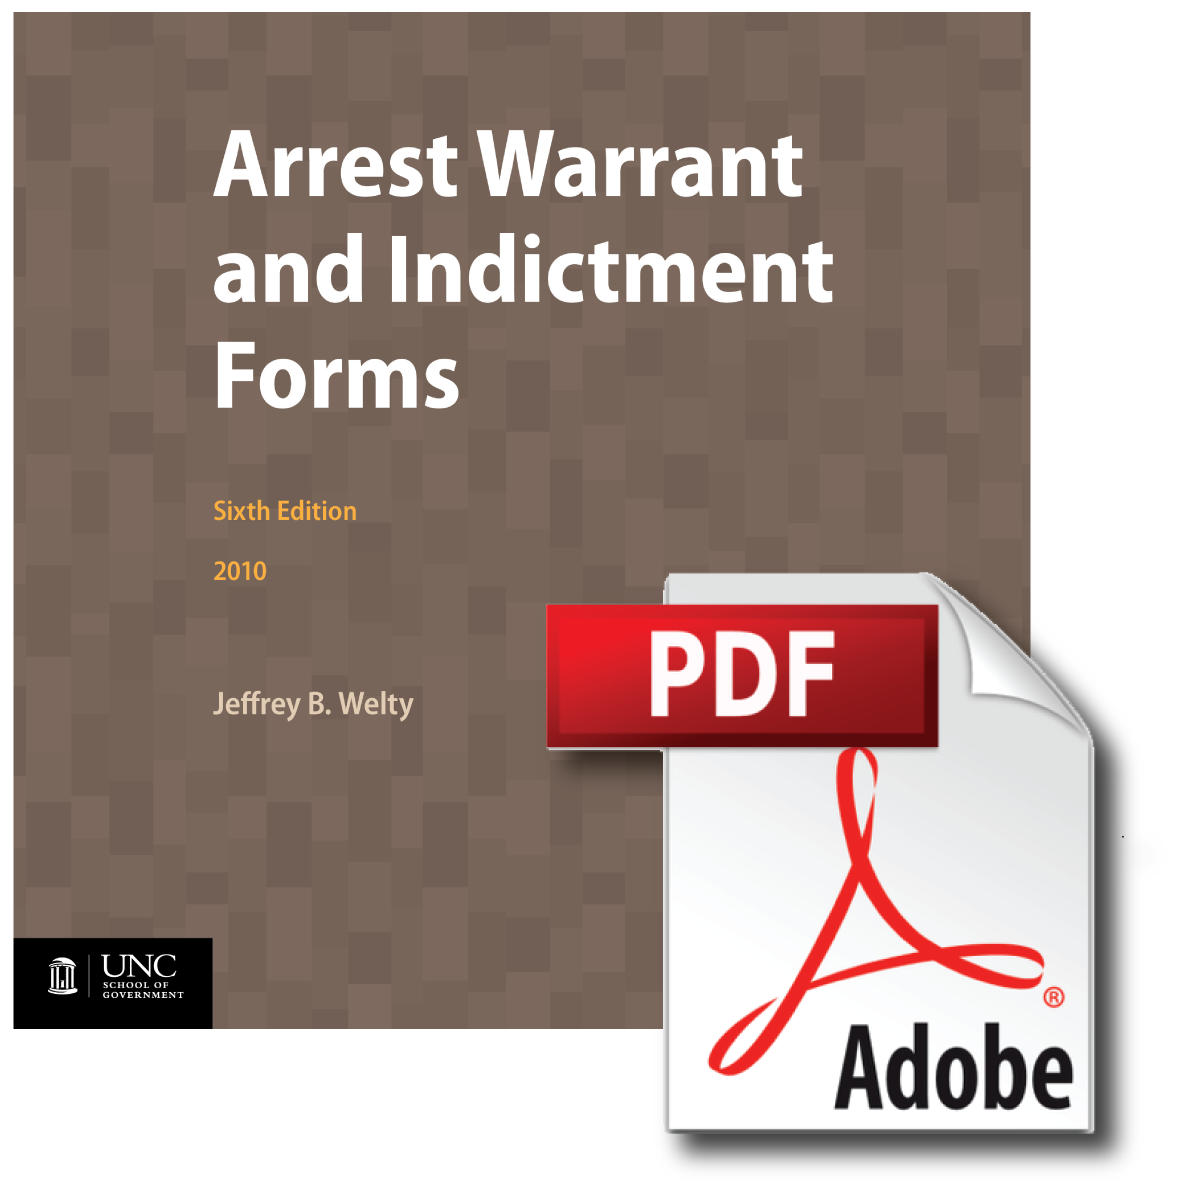 Cover image for 2012 Update to Arrest Warrant and Indictment Forms, Sixth Edition, 2010 (Free PDF)